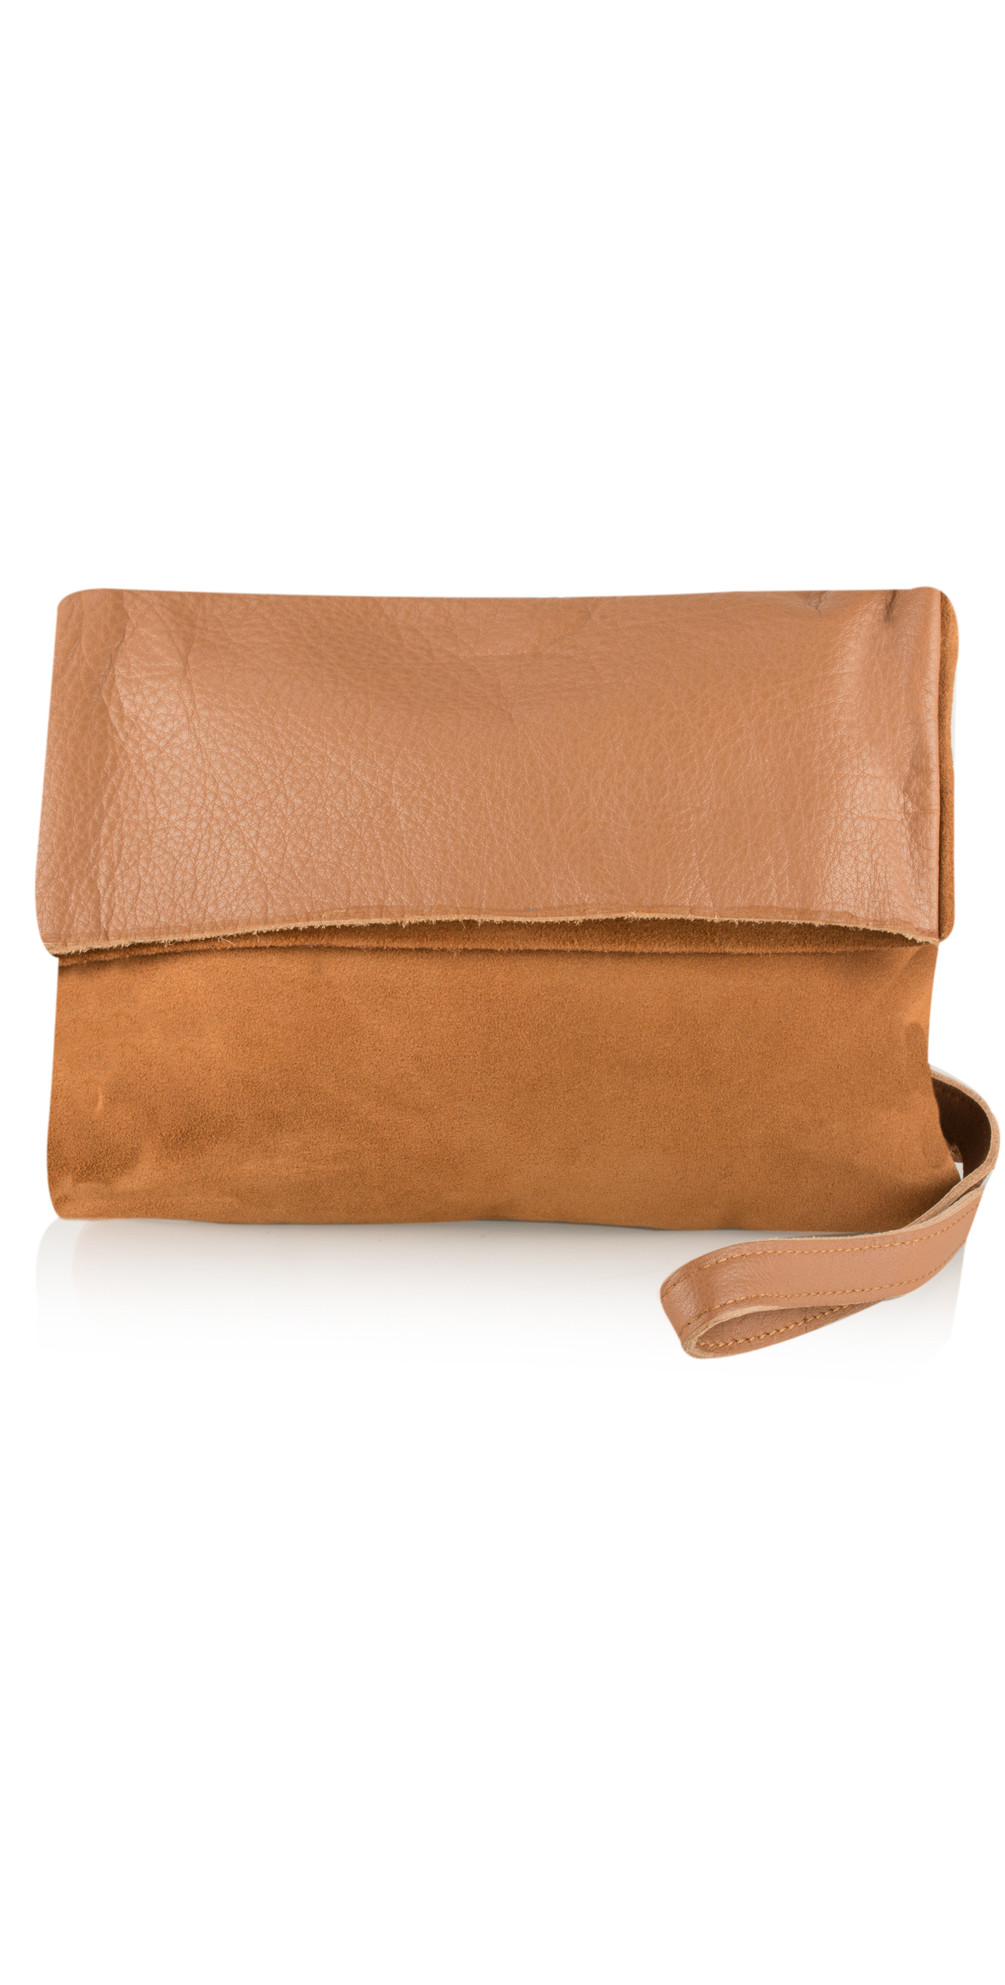 Cross Body bag main image